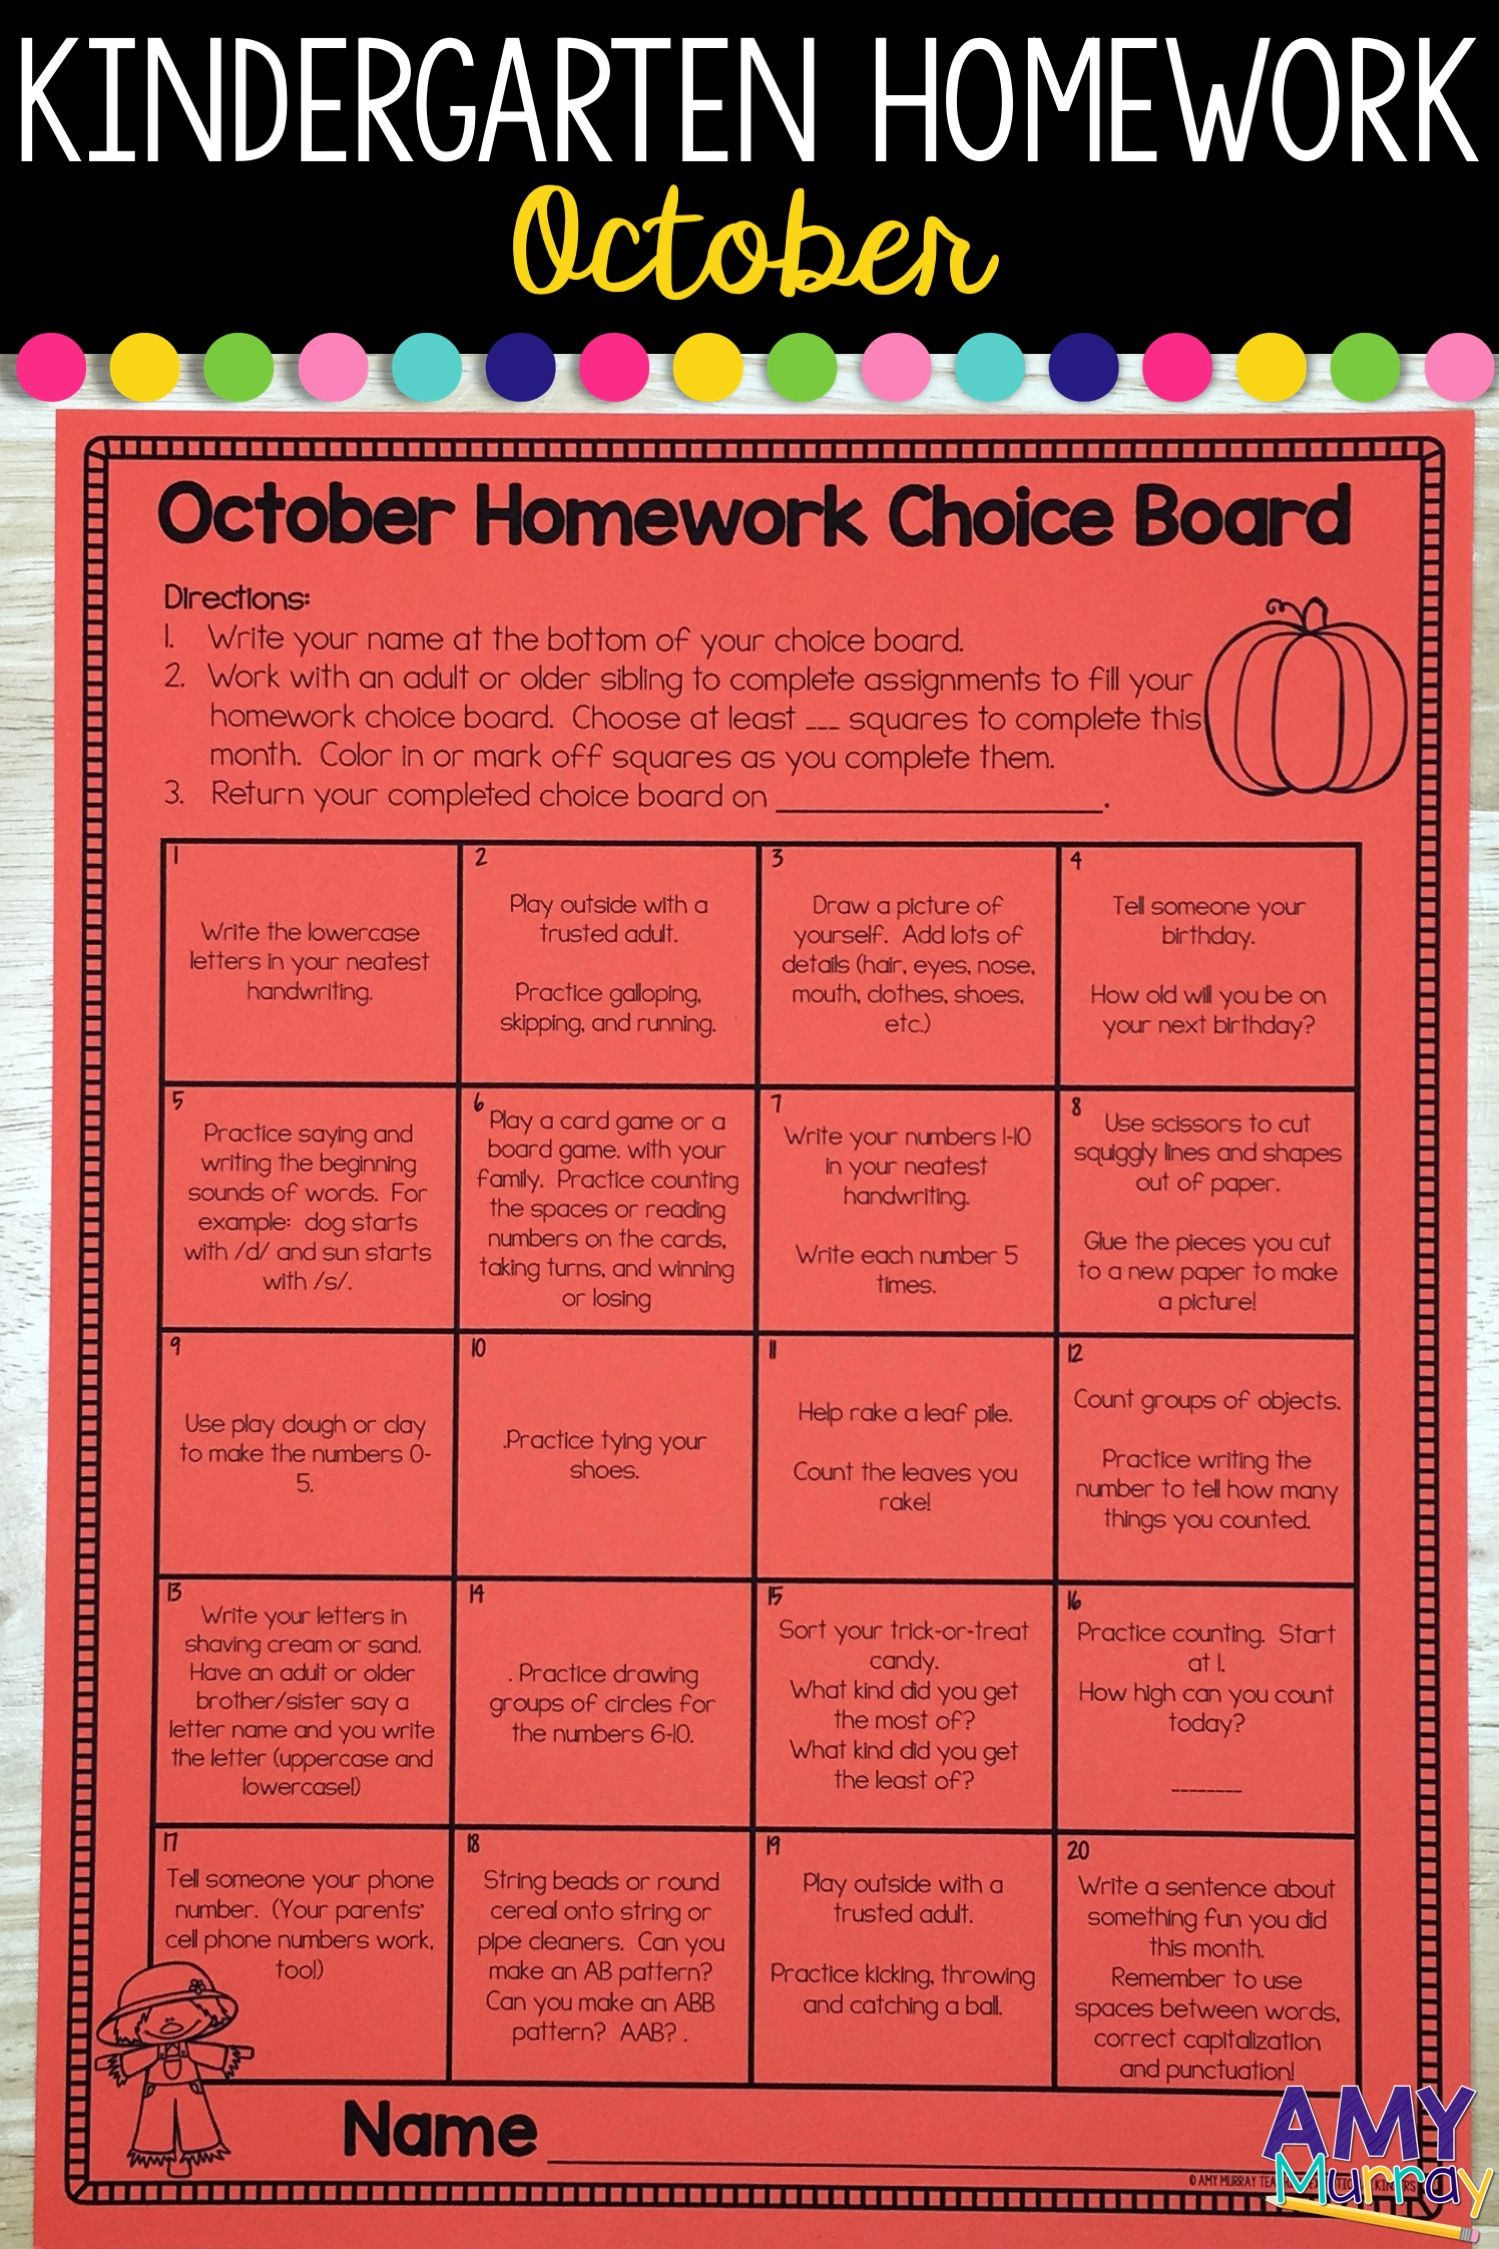 Kindergarten Homework Menu October | Kindergarten Homework